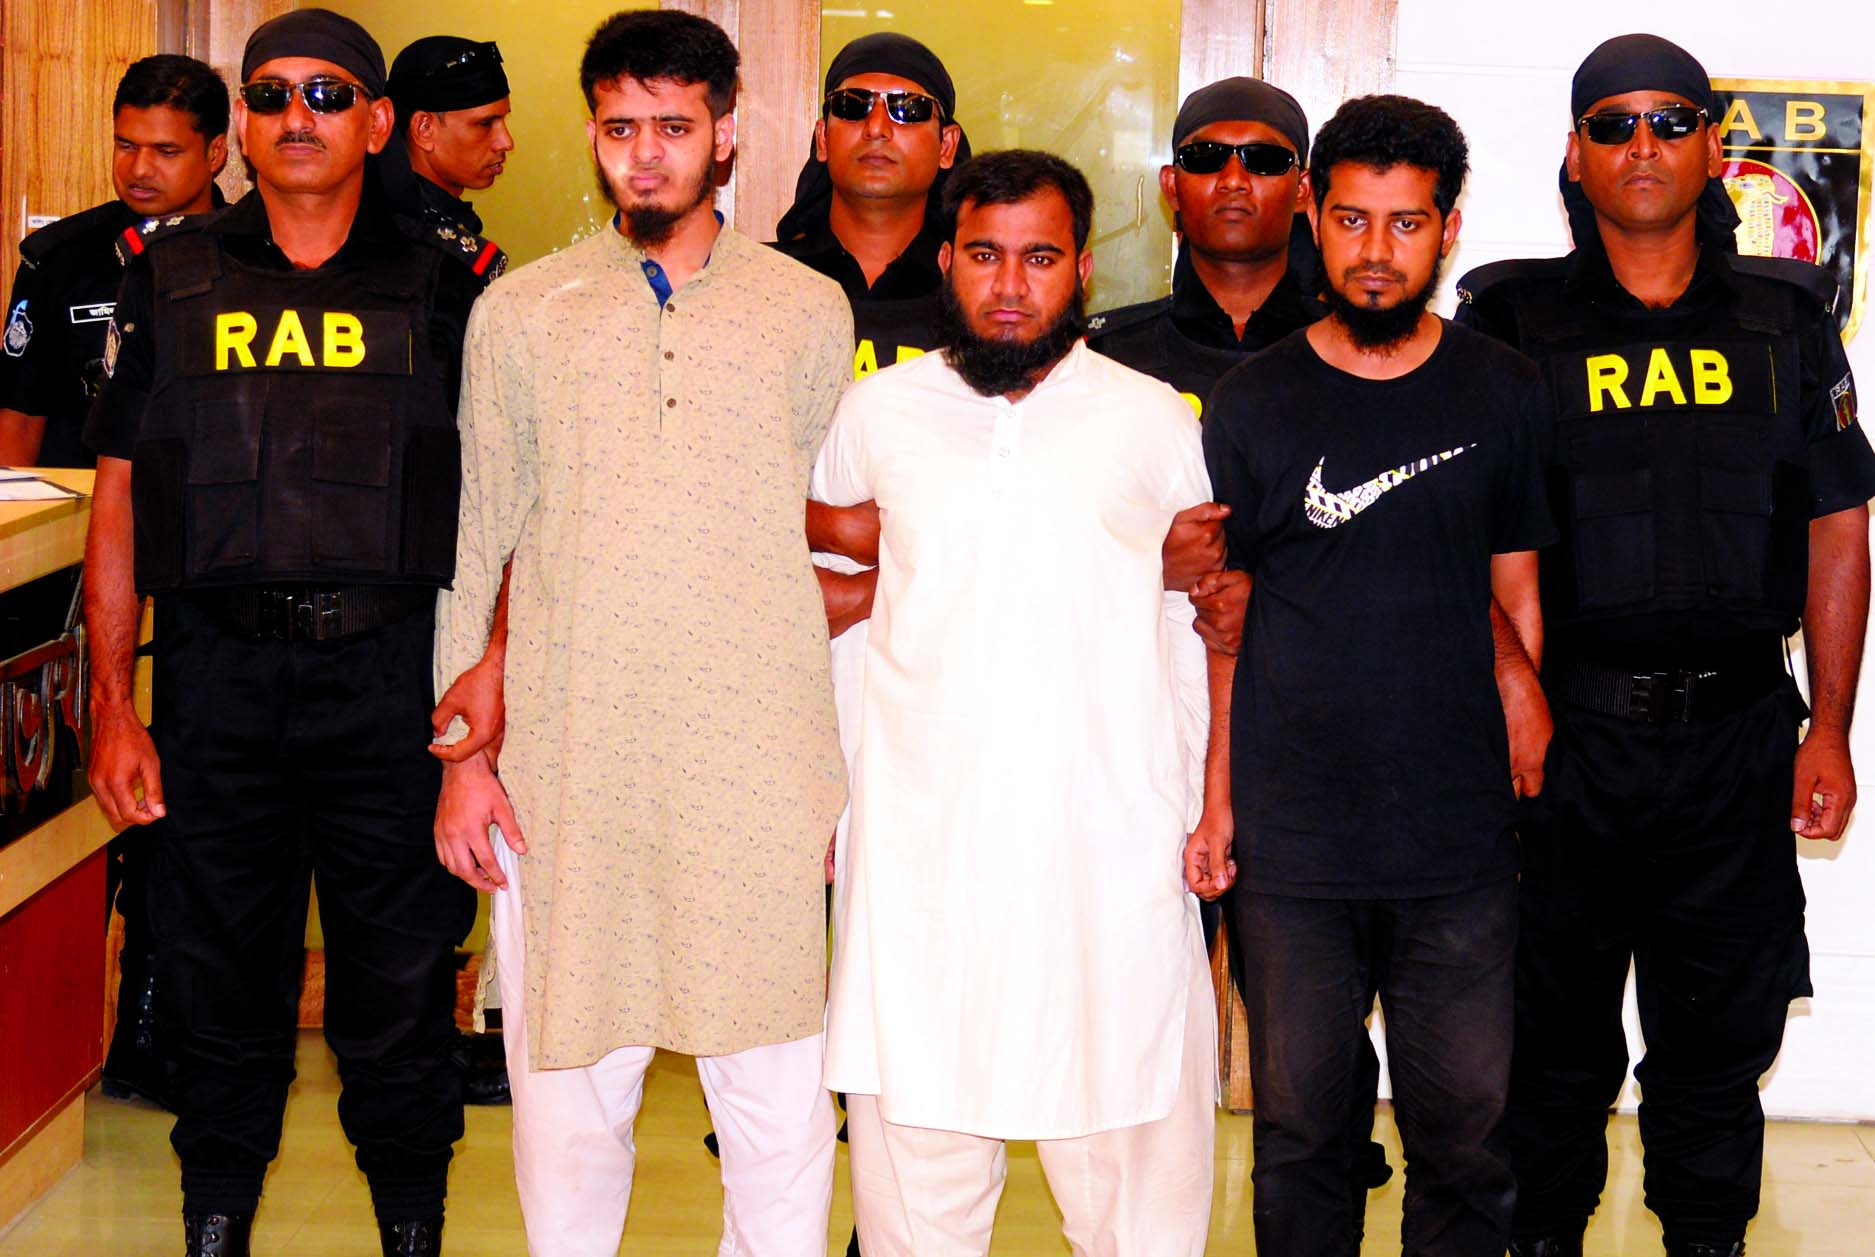 Three JMB militants (Sarwar-Tamim group) were arrested by RAB-3 from city's Aftabnagar area under Badda Thana on Wednesday.